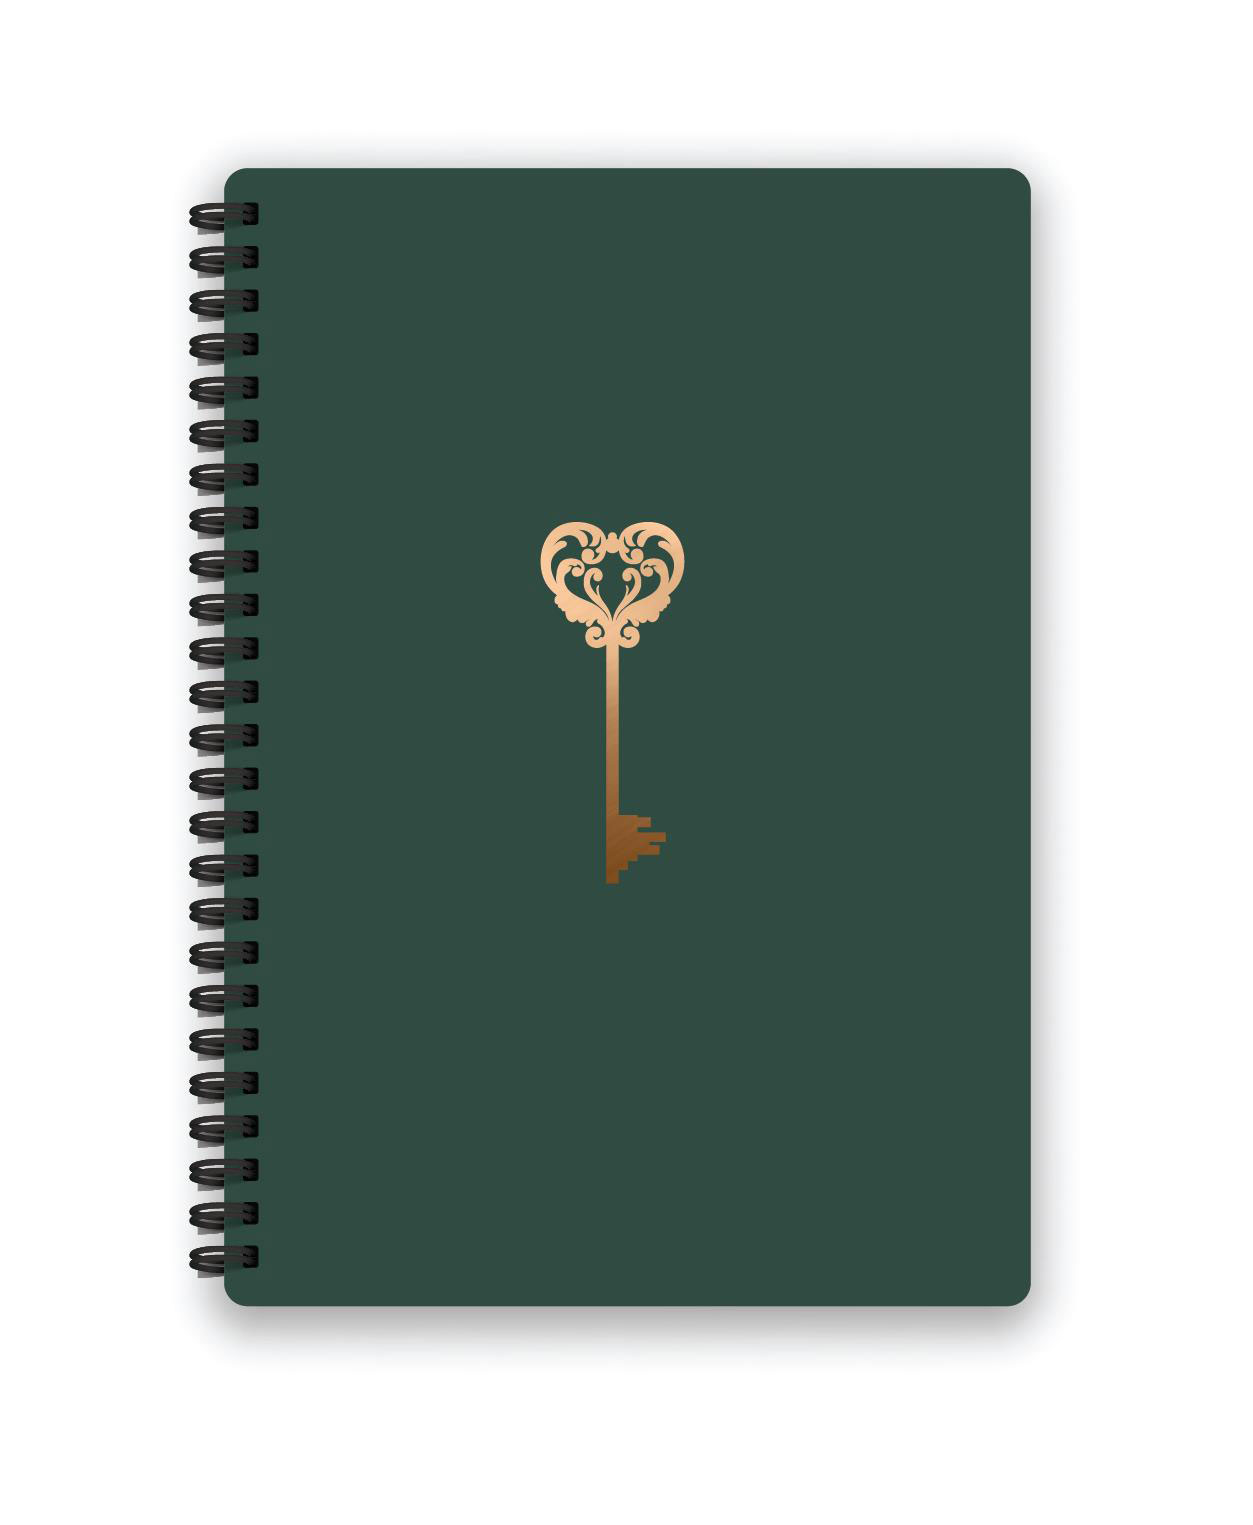 Belvedere Key Notebook 7X9.5 Inch